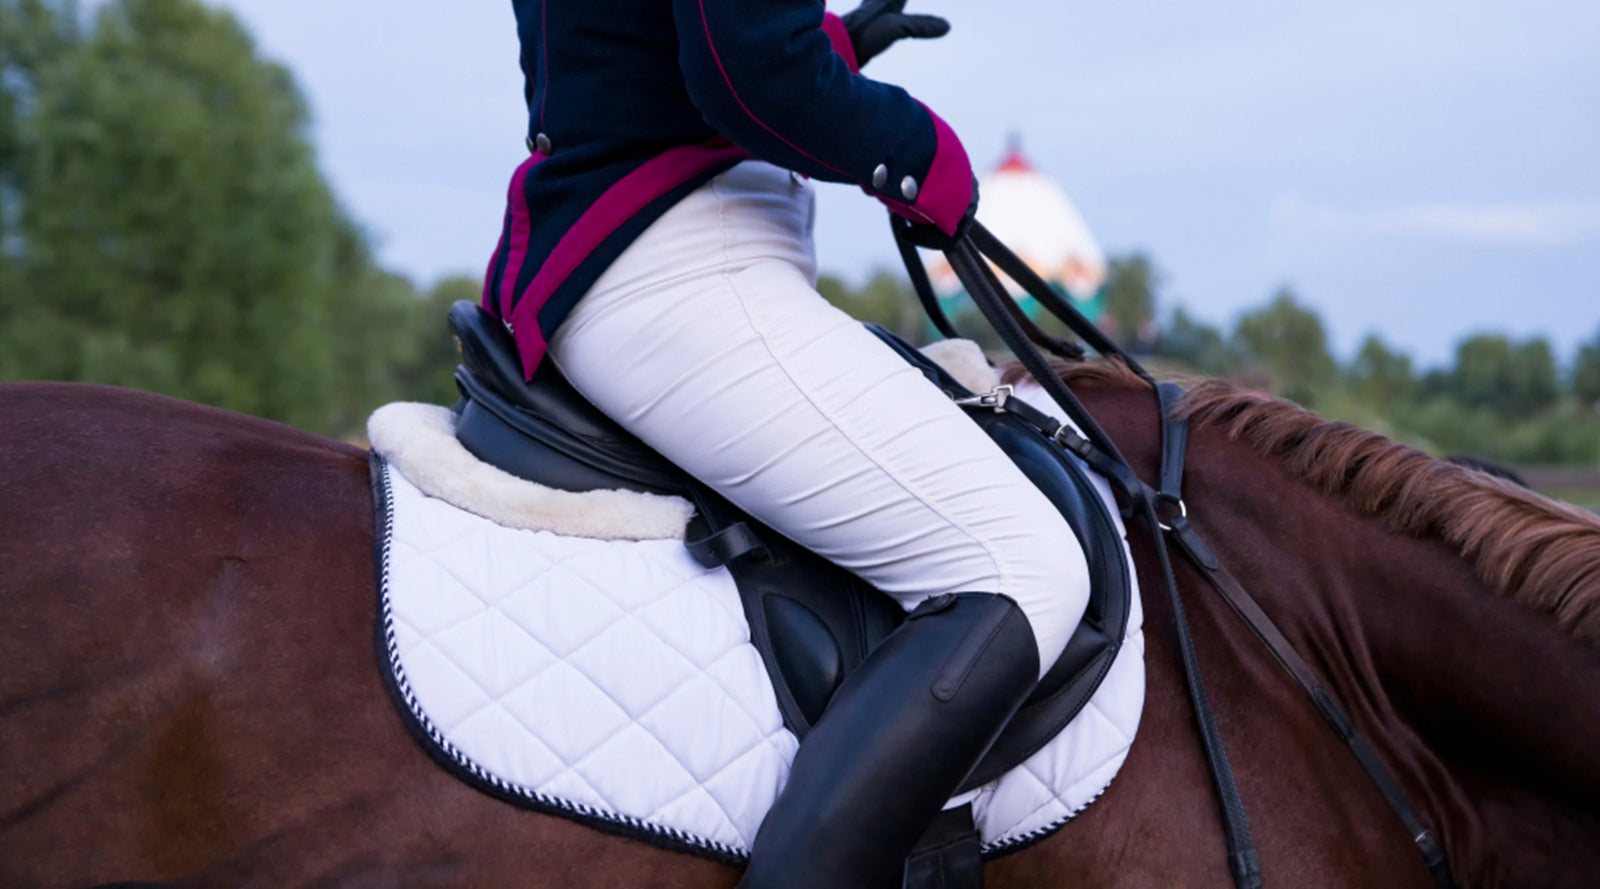 Buy Breeches, Riding Boots, Horse Saddles Online - Breeches com